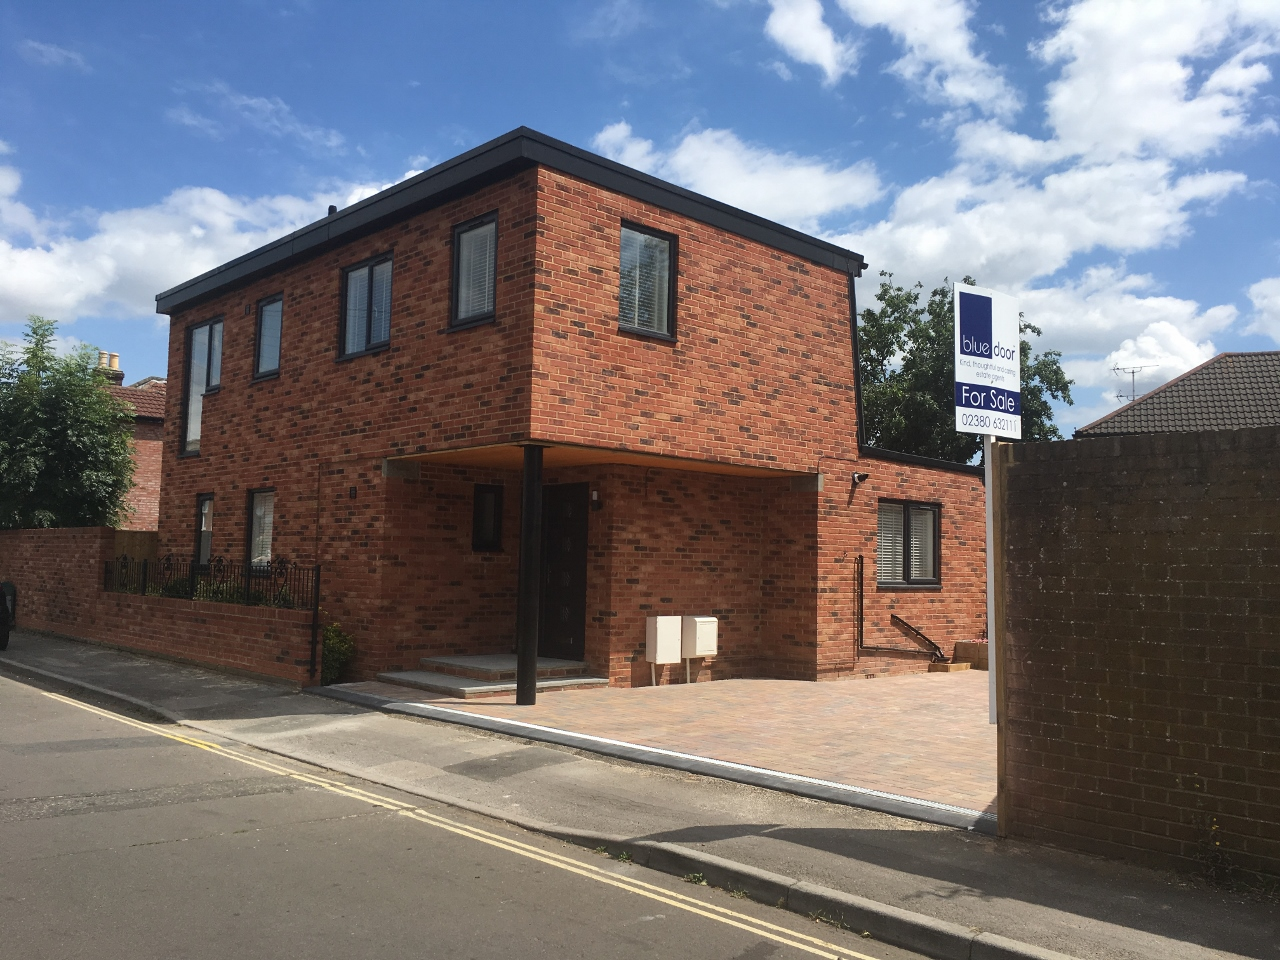 Kent Road House for Sale with solar panels